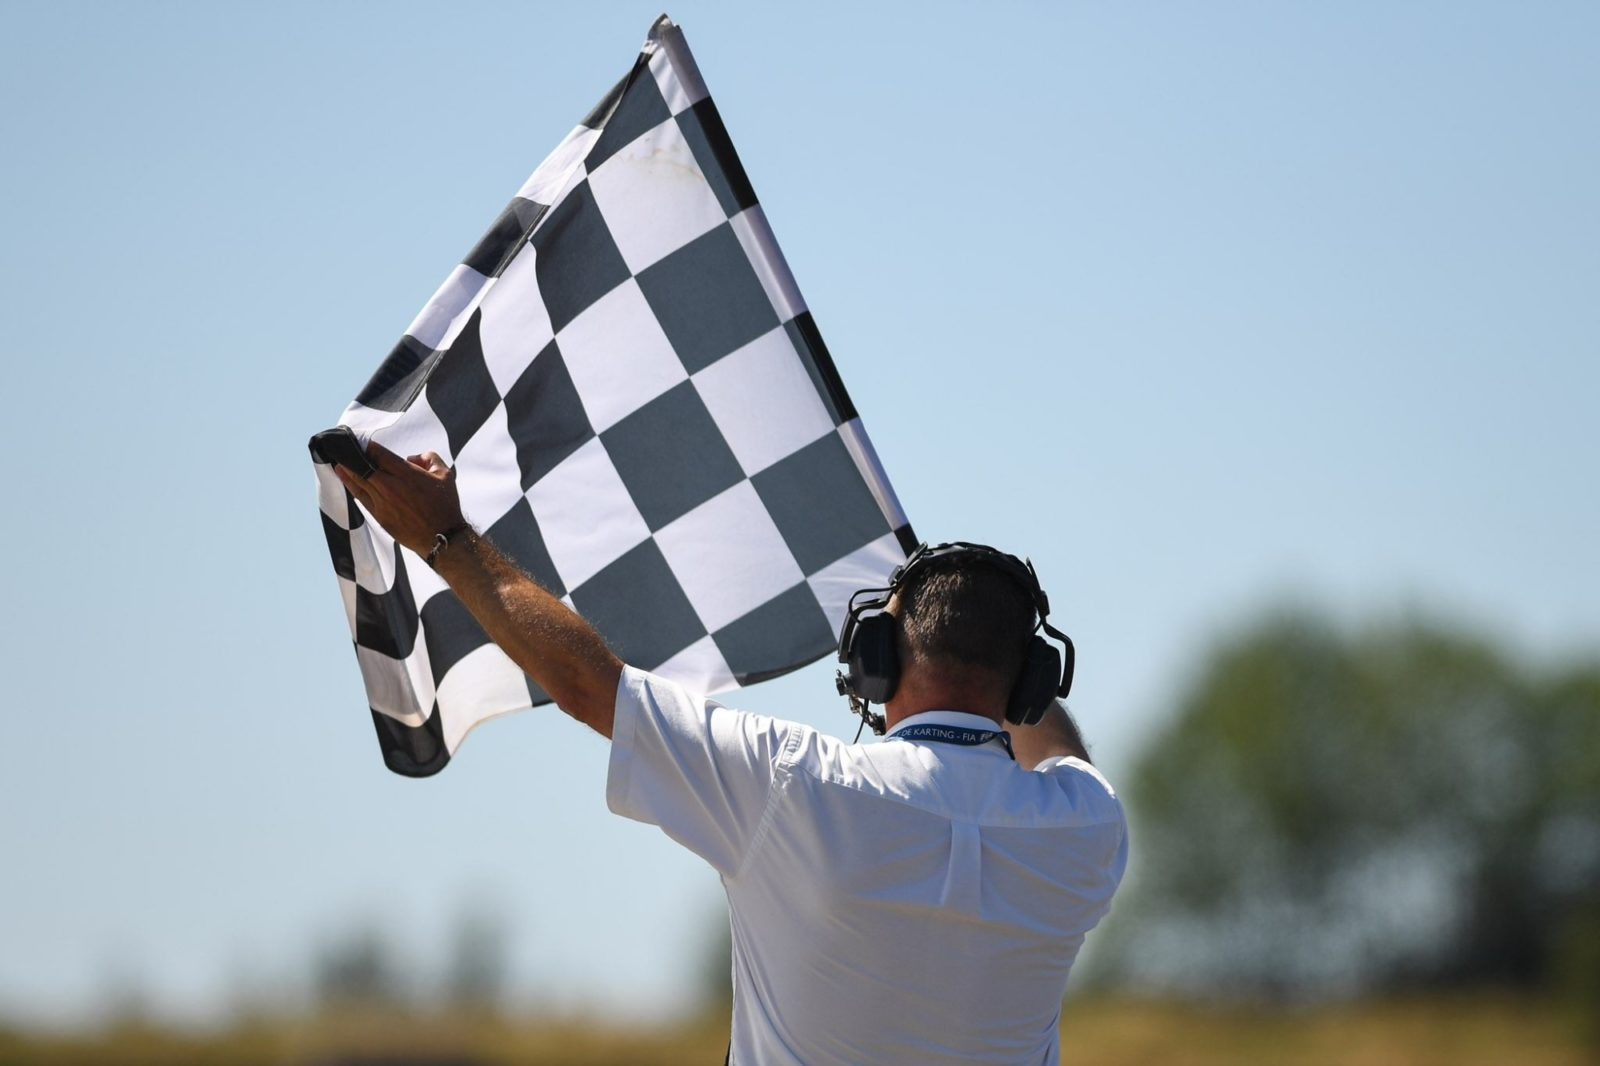 Flag marshall waves the checkered flag in Essay, France, European Championship